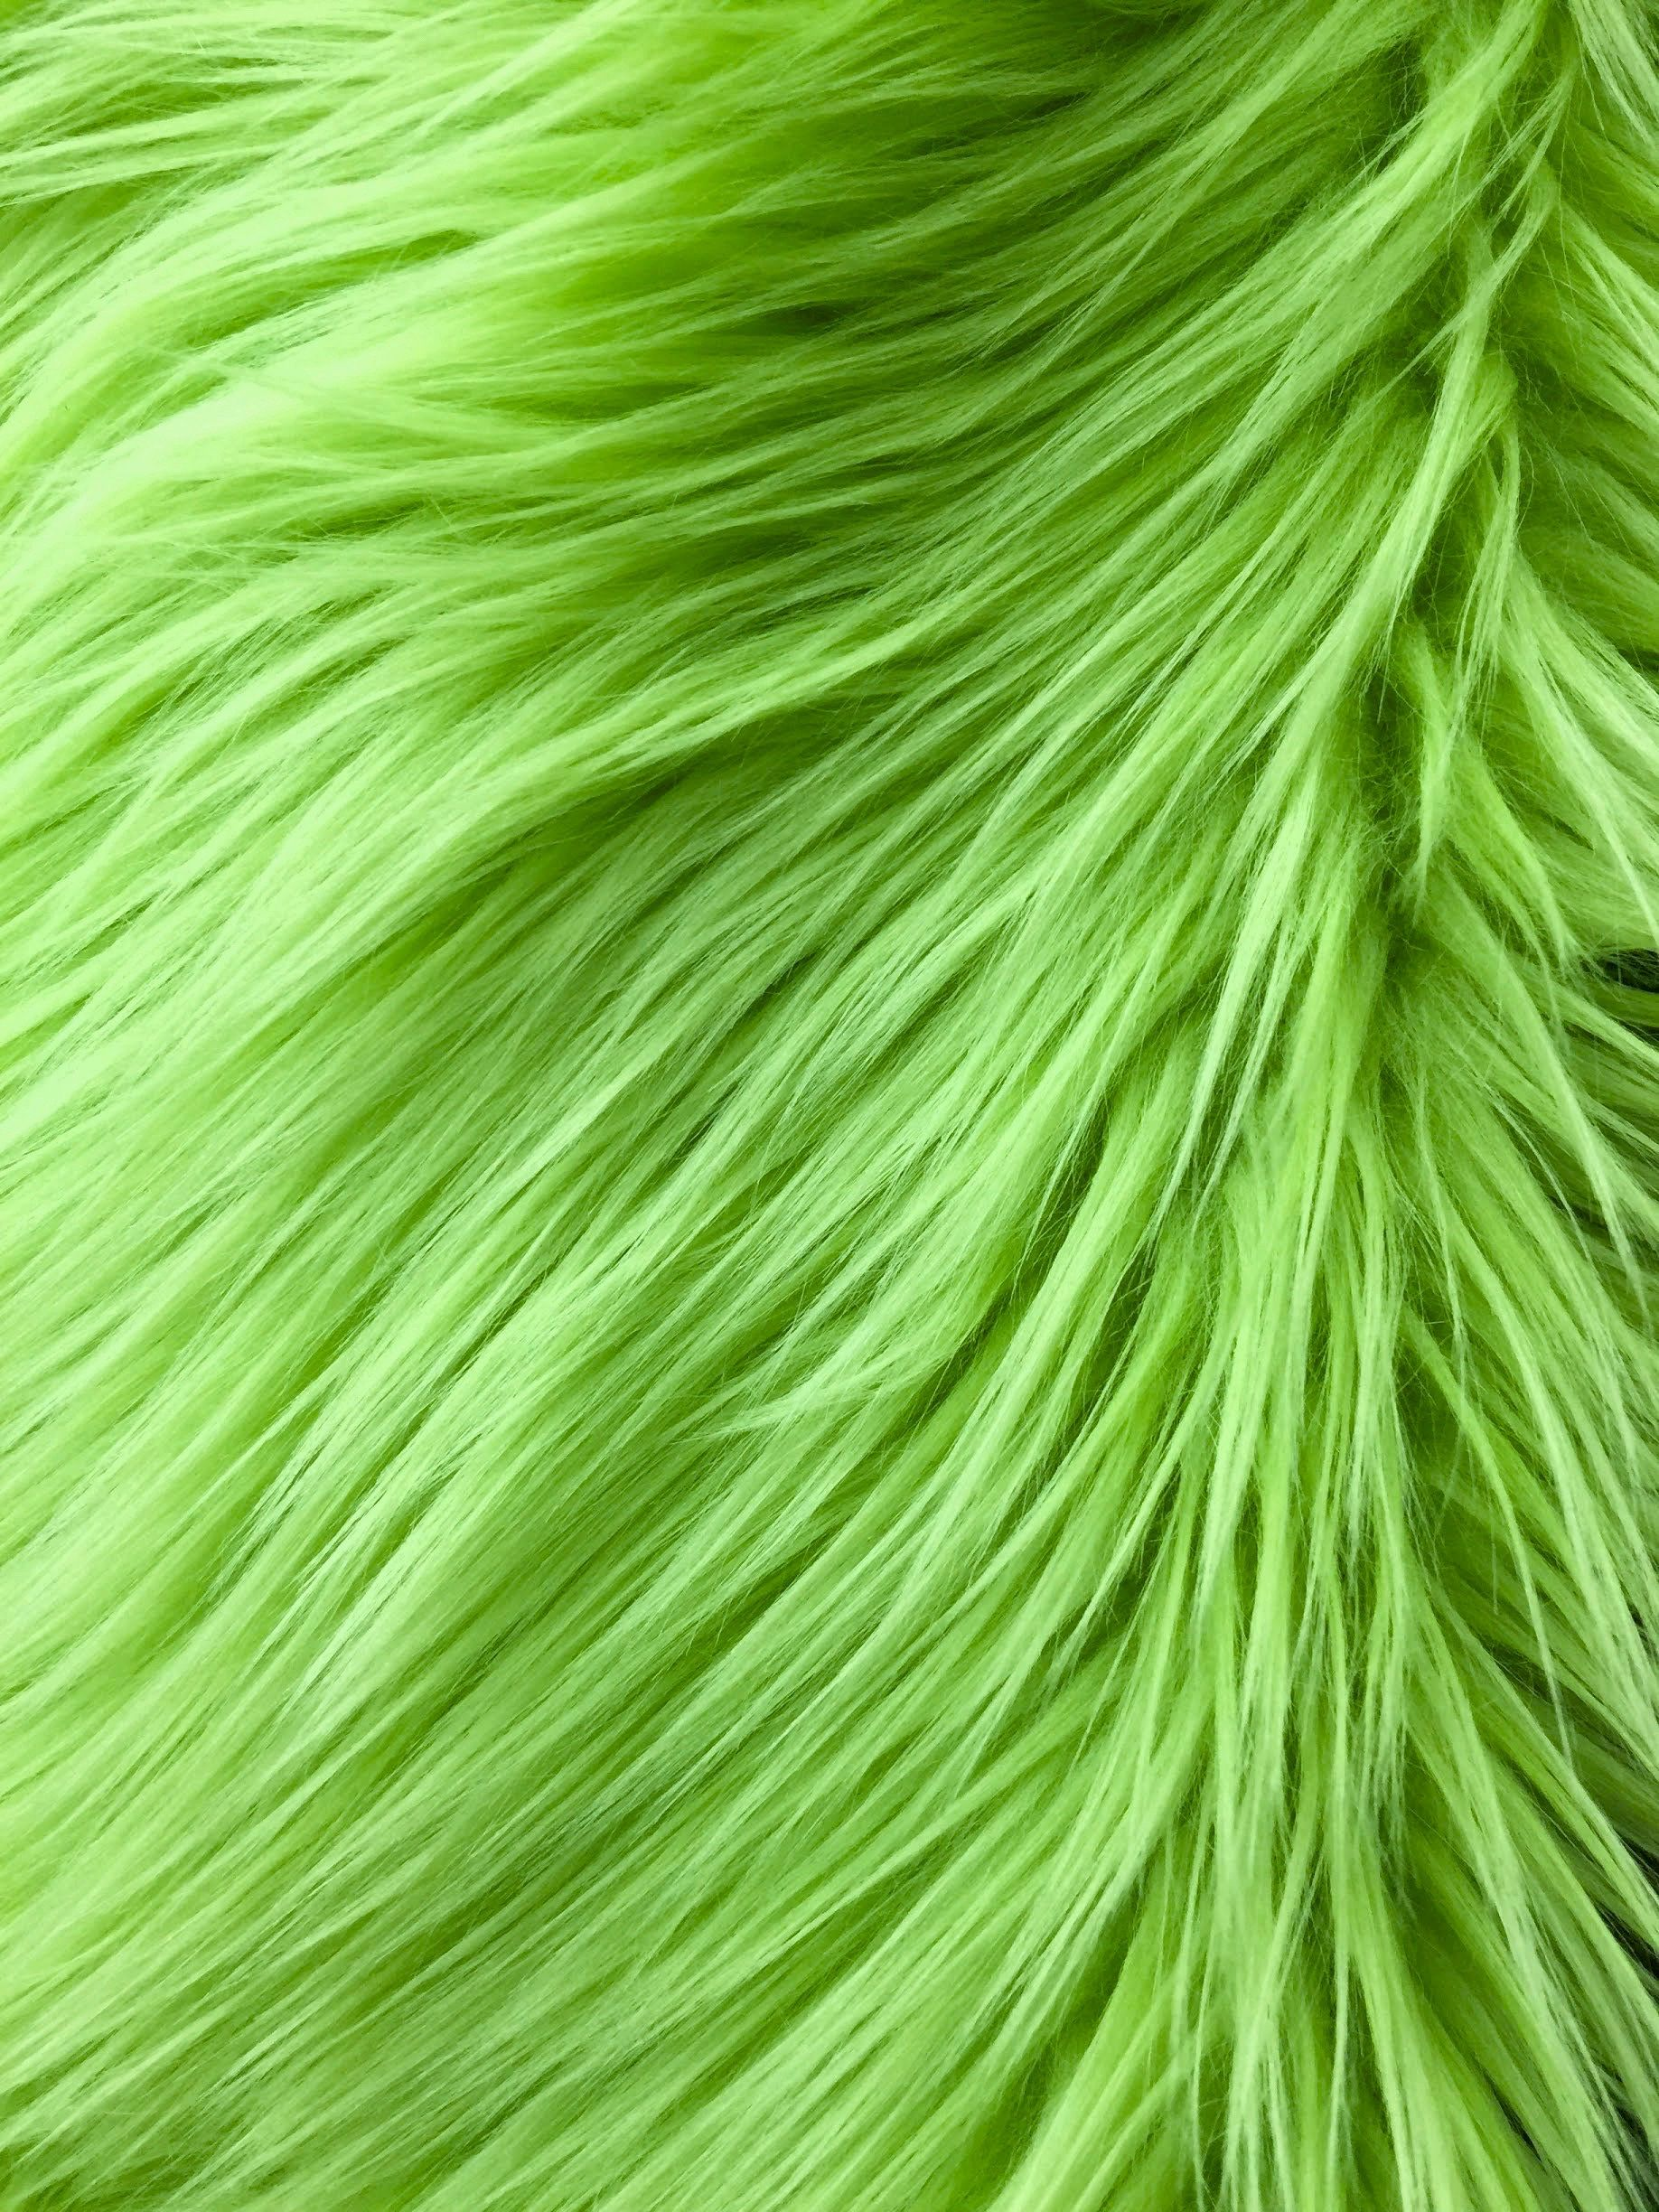 Eden LIME GREEN 2 Inch Long Pile Soft Faux Fur Fabric by